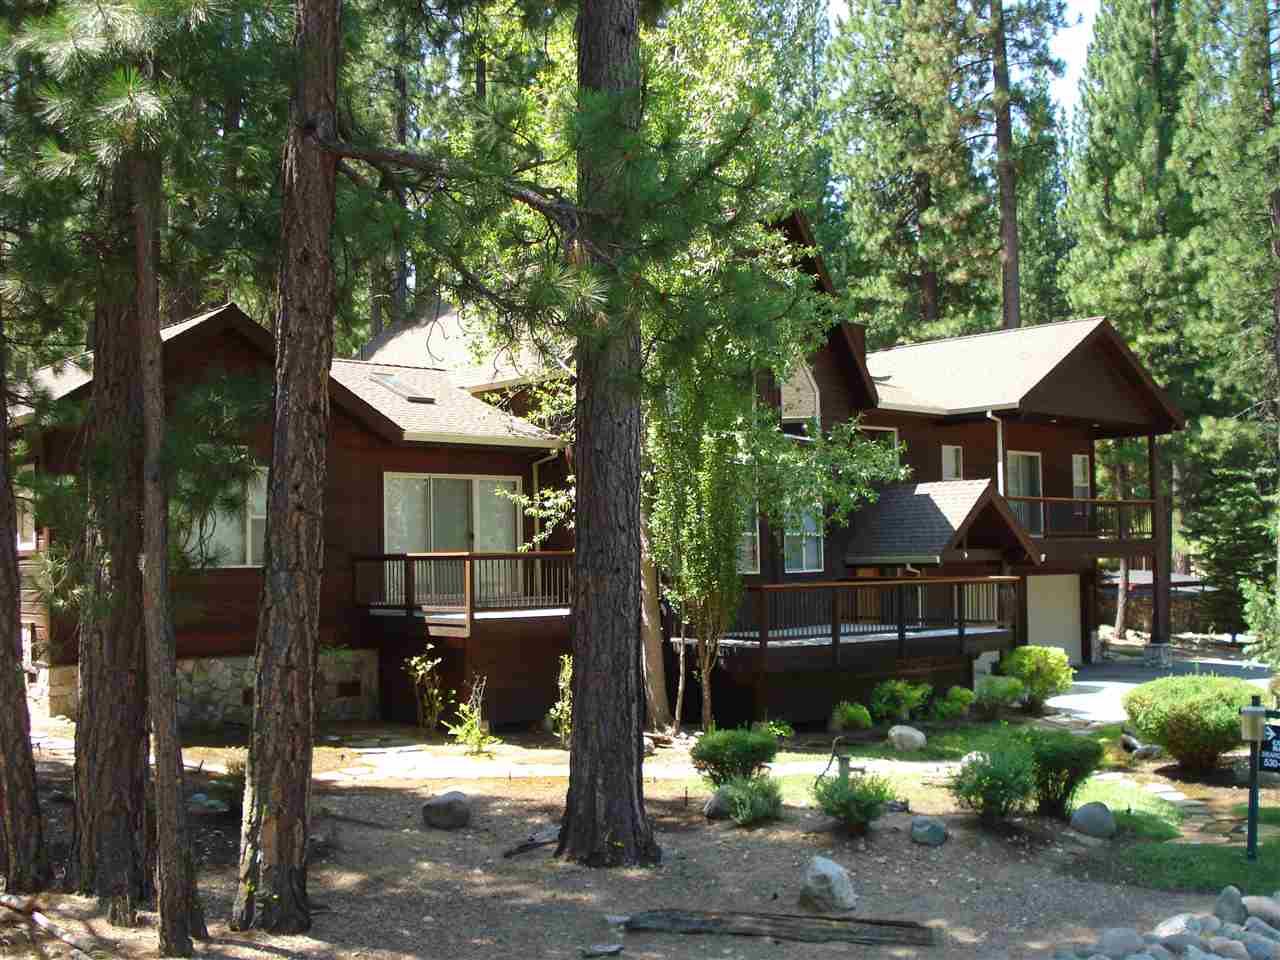 Single Family Homes for Active at 566 Miner's Passage Lake Almanor, California 96106 United States